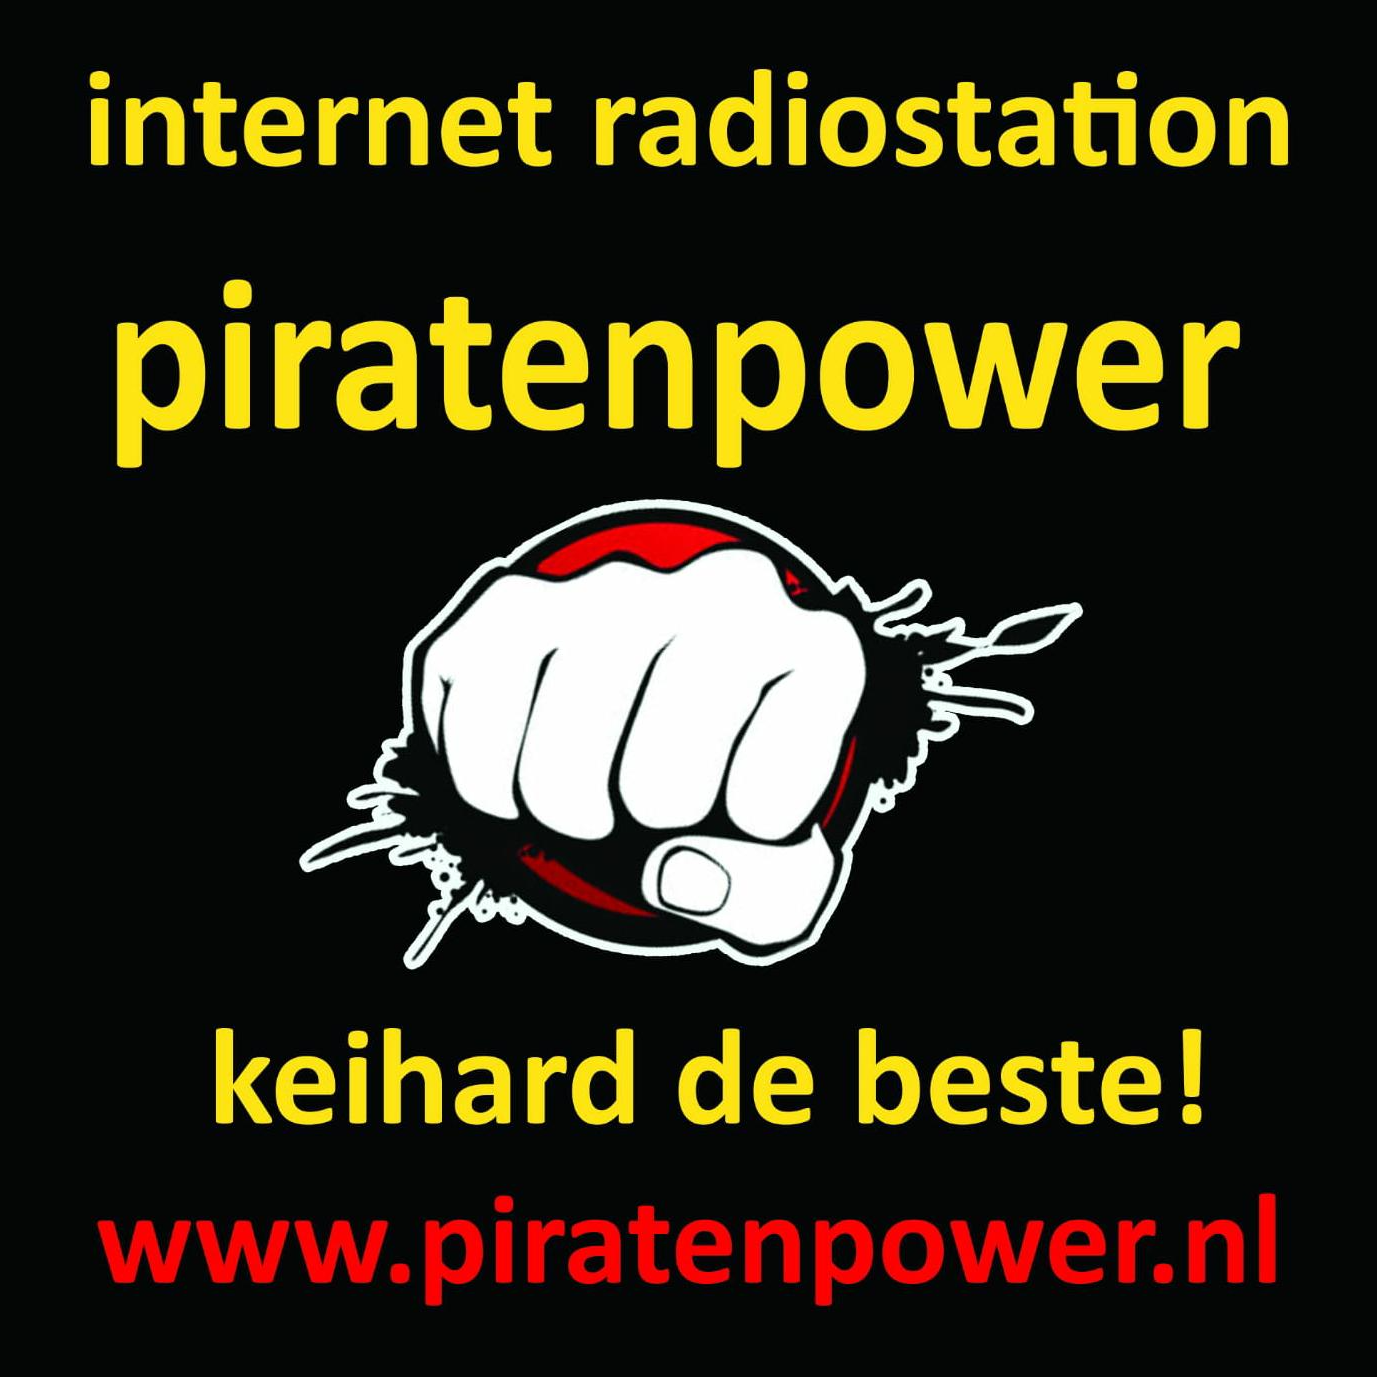 piratenpower keihard de beste